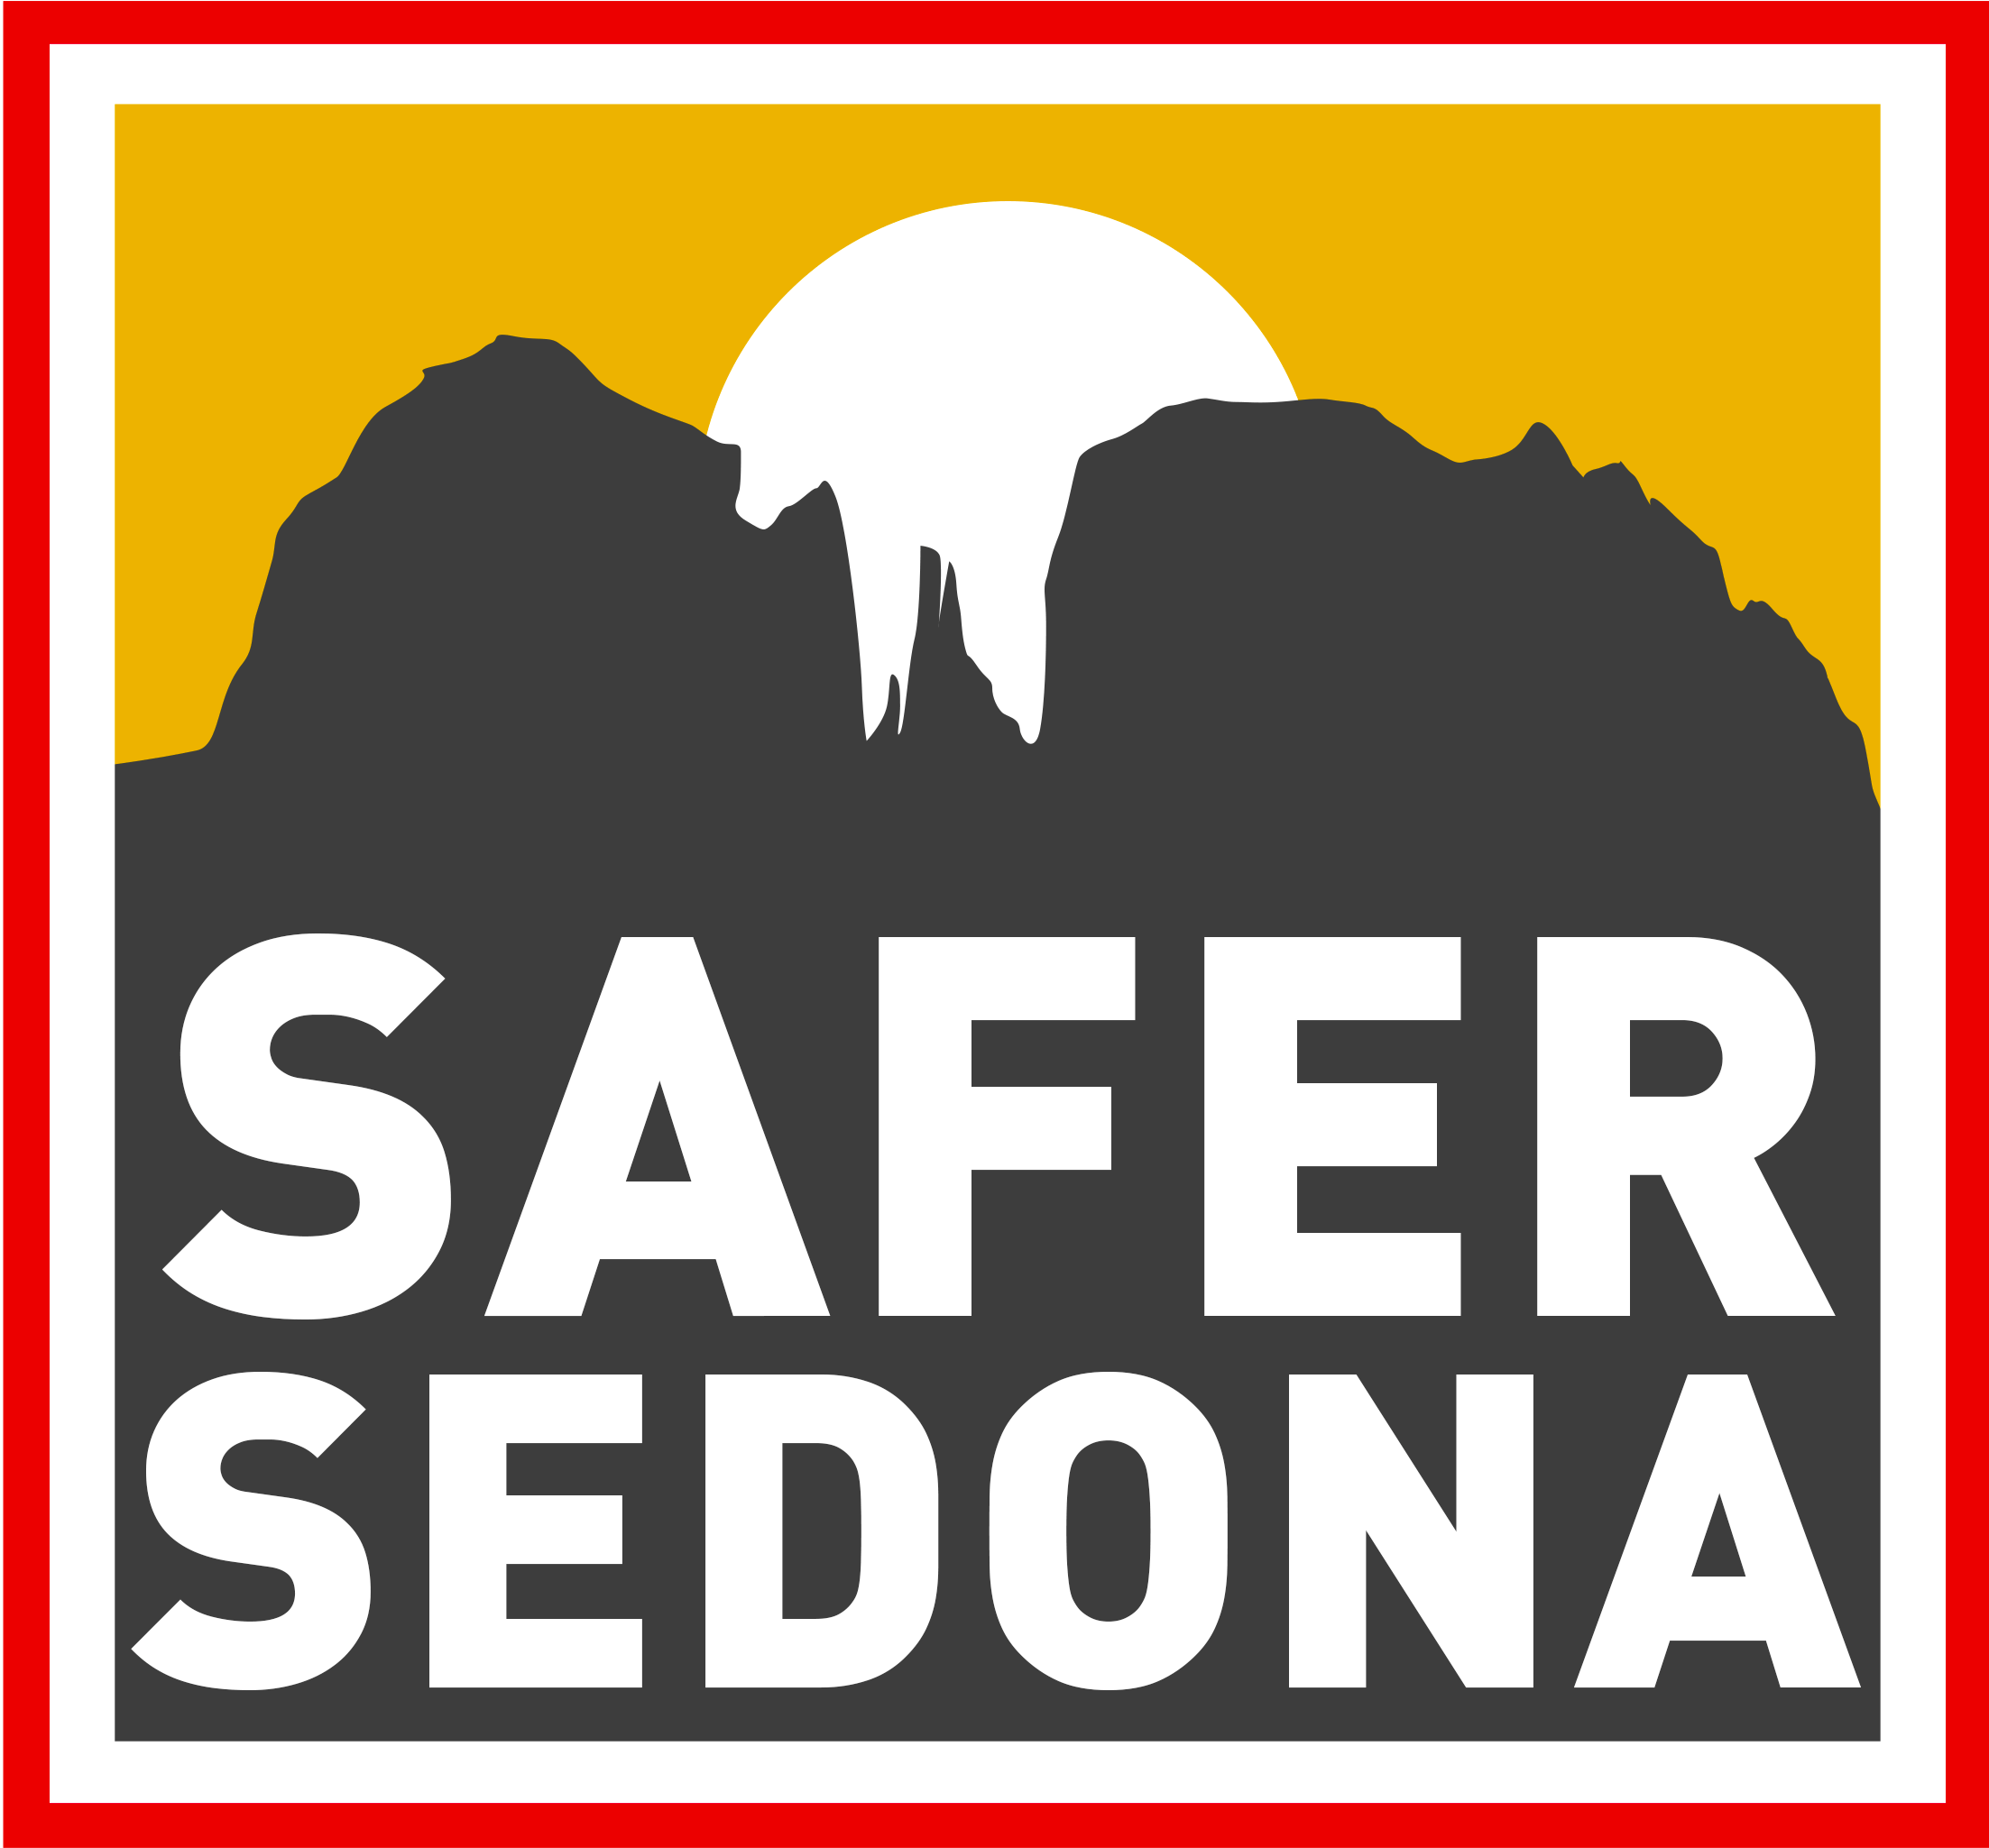 SAFER SEDONA